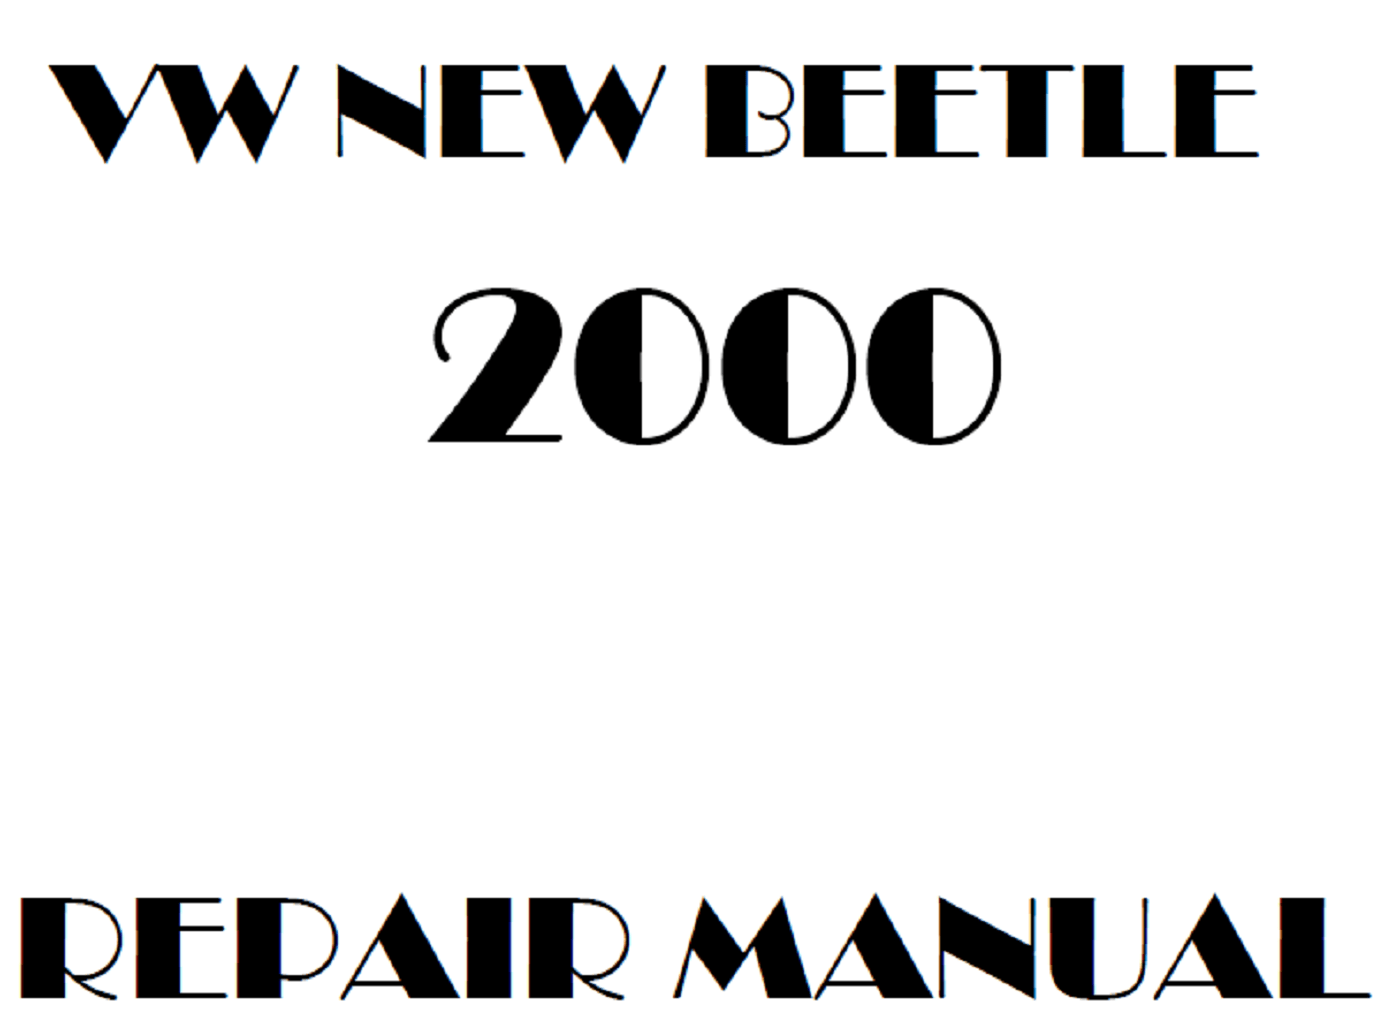 2000 Volkswagen New Beetle repair manual